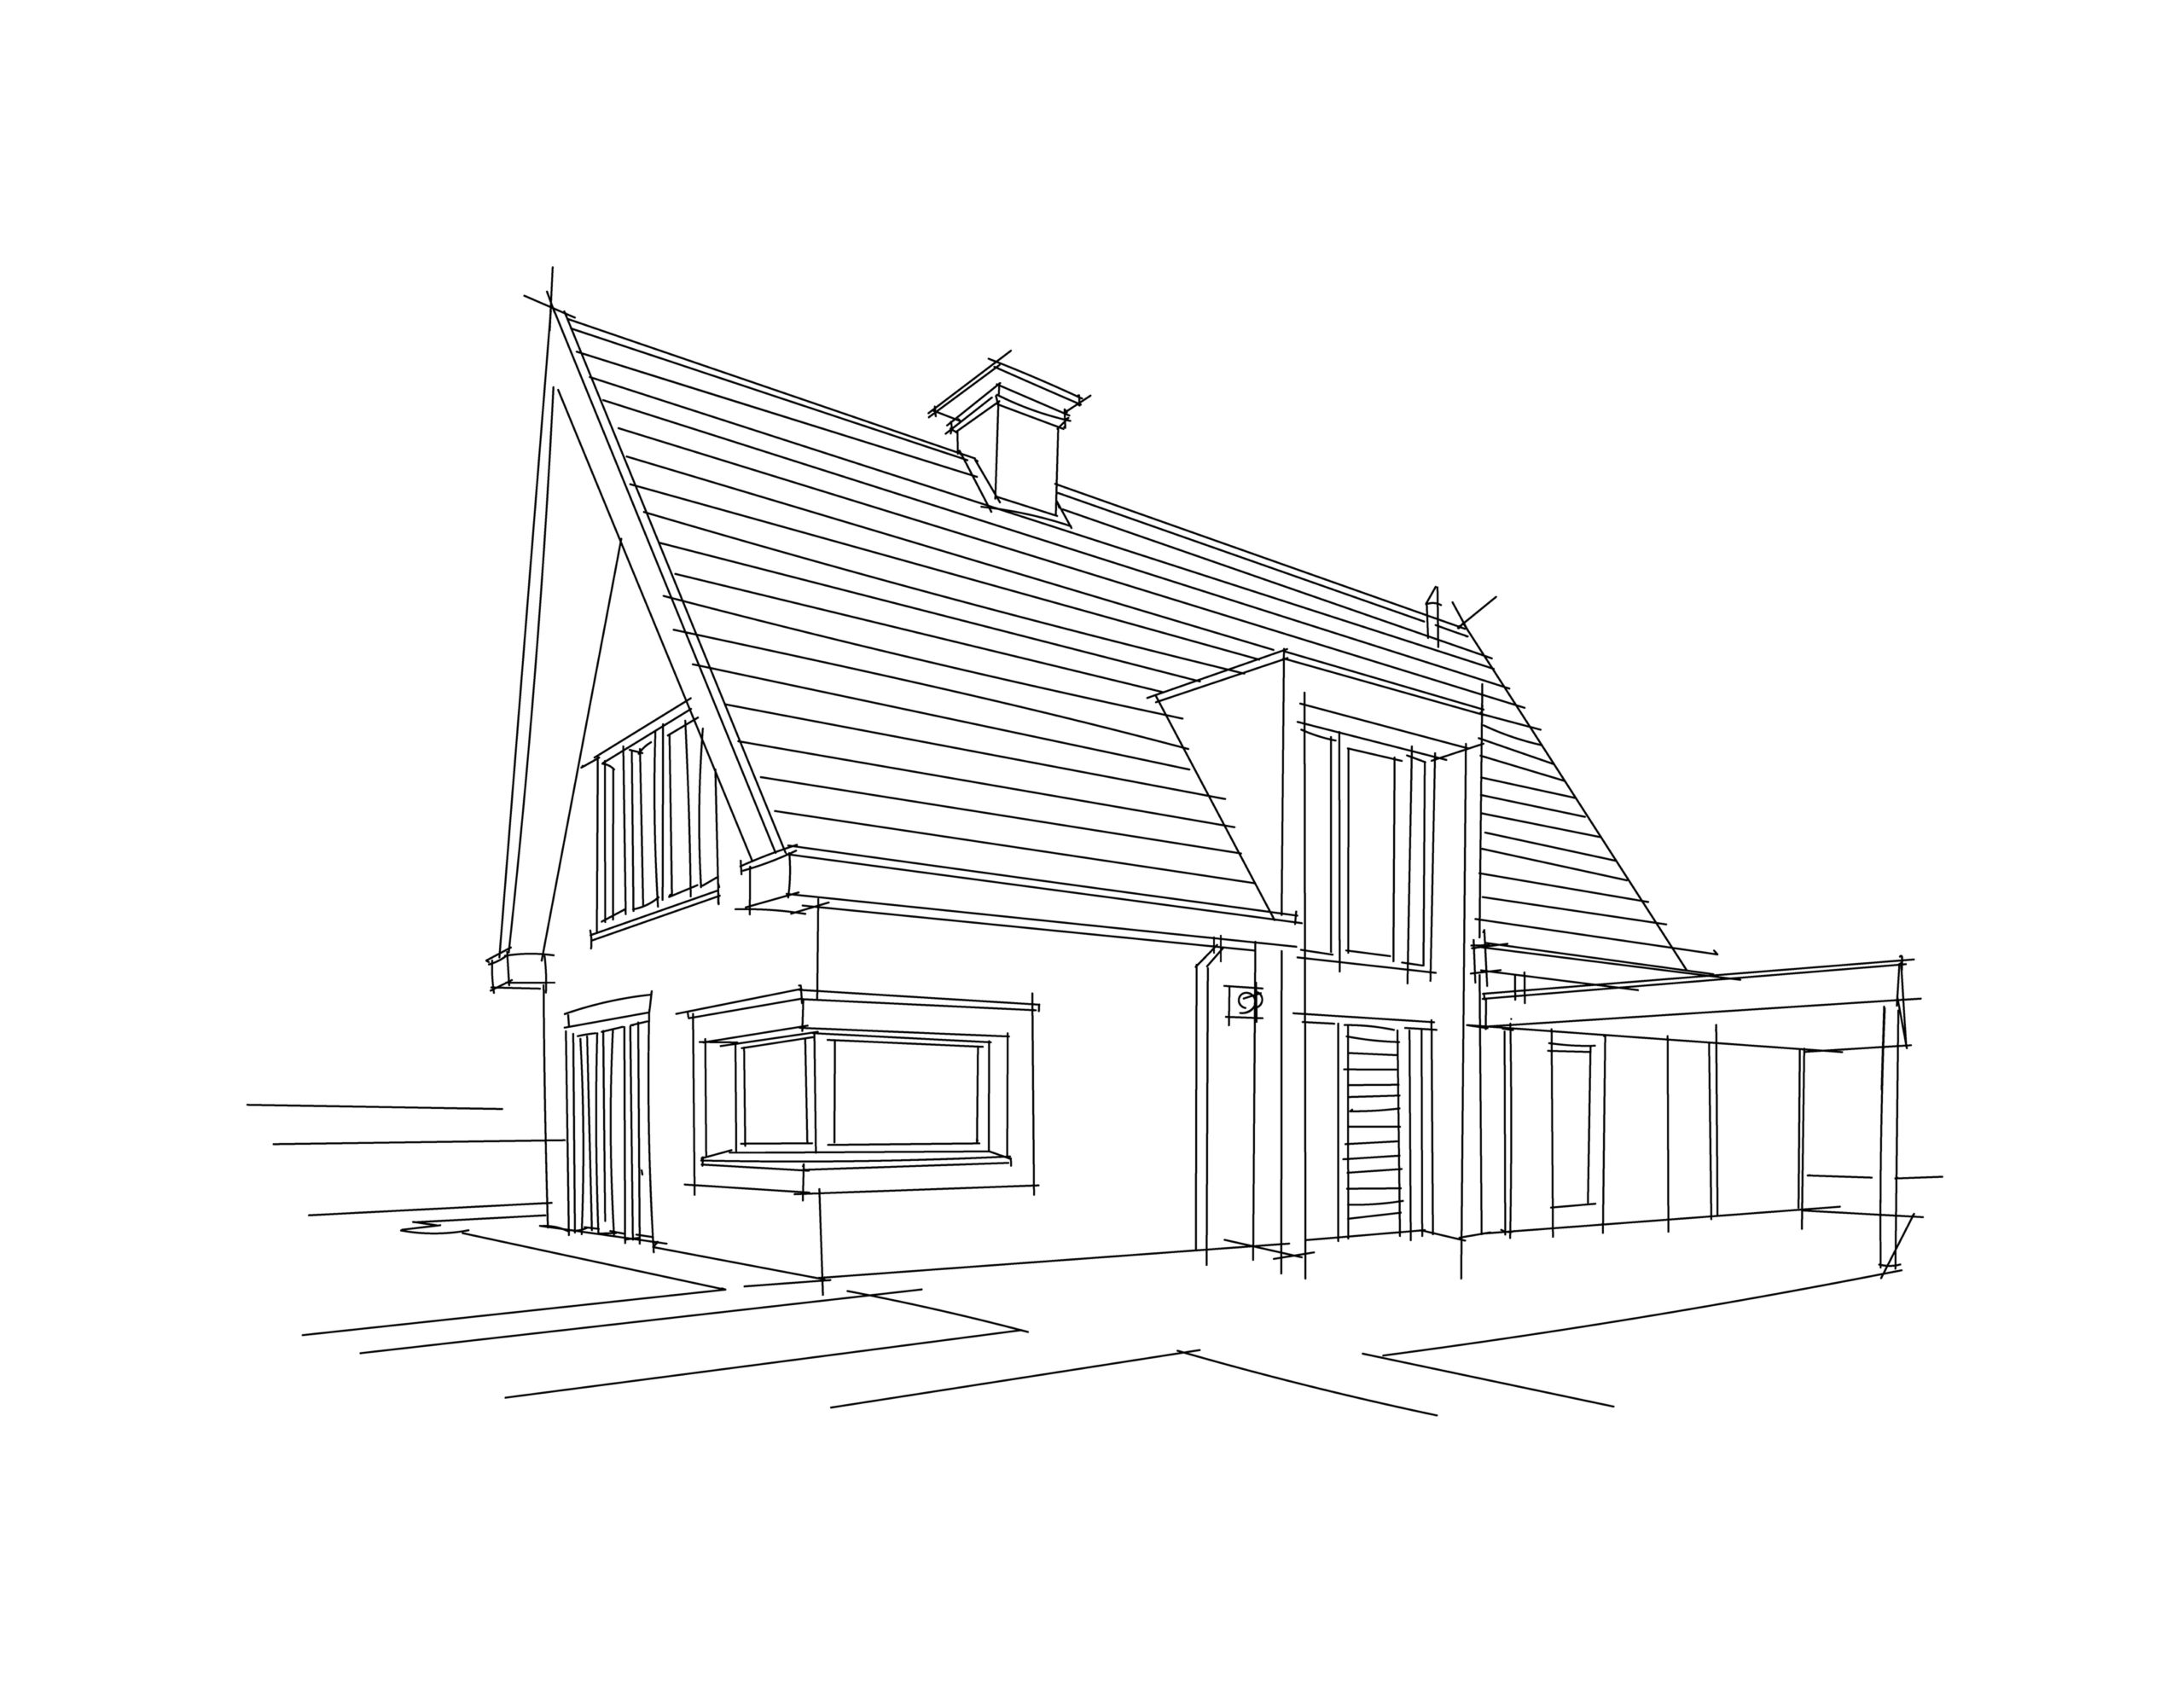 Architectural Drawing of a privat european house. Vector.